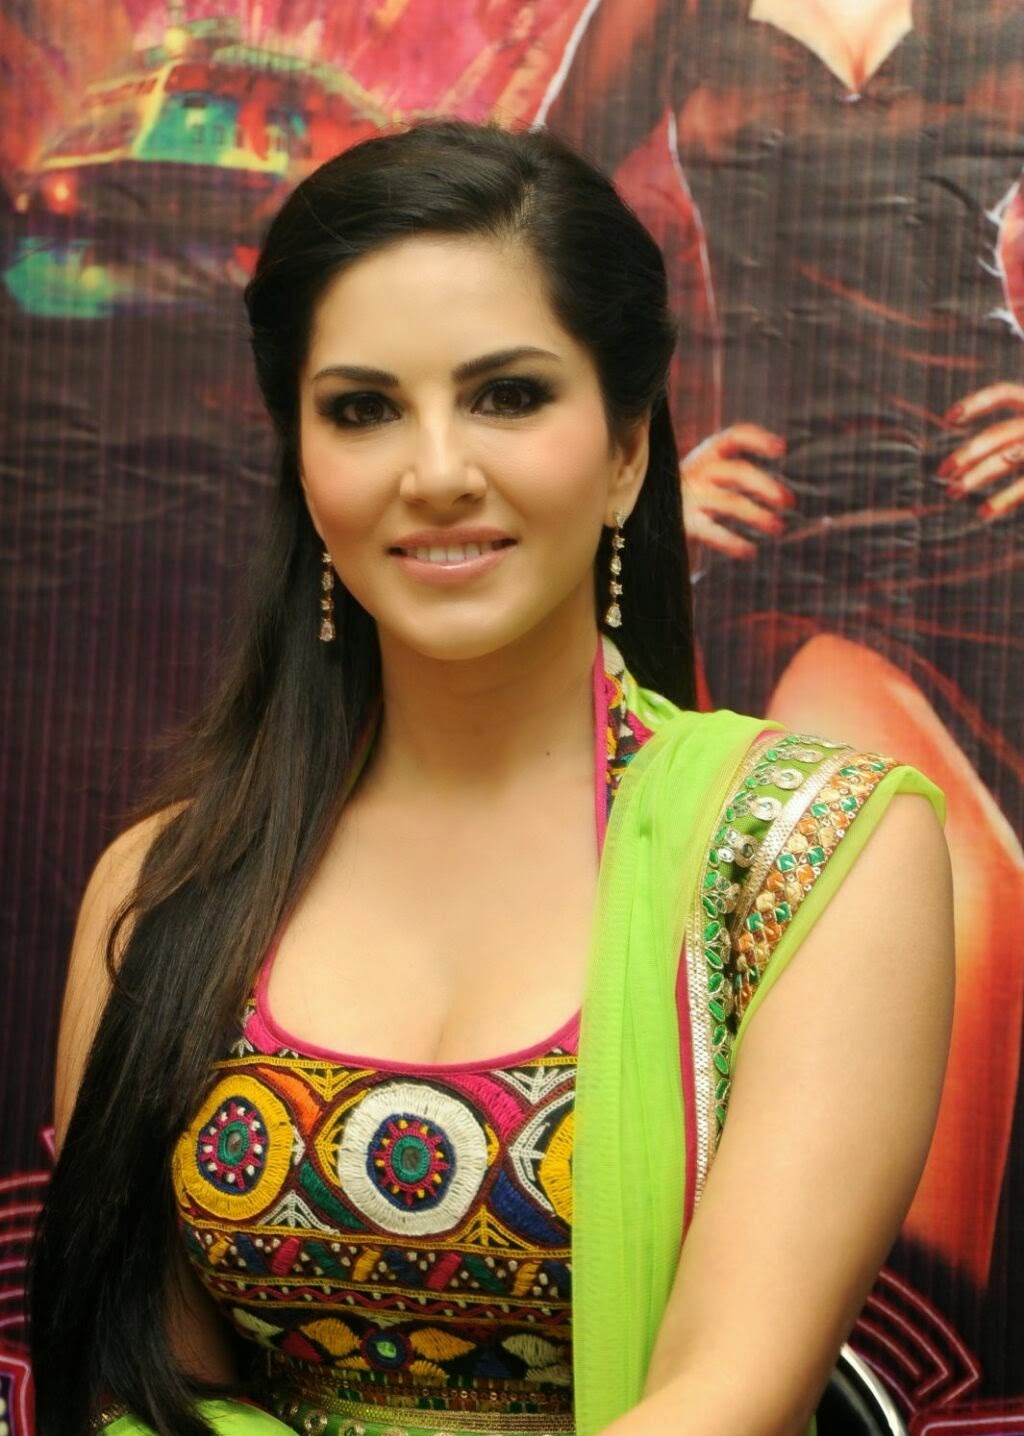 sunny leone makes her dubsmash debut in style - the new nation